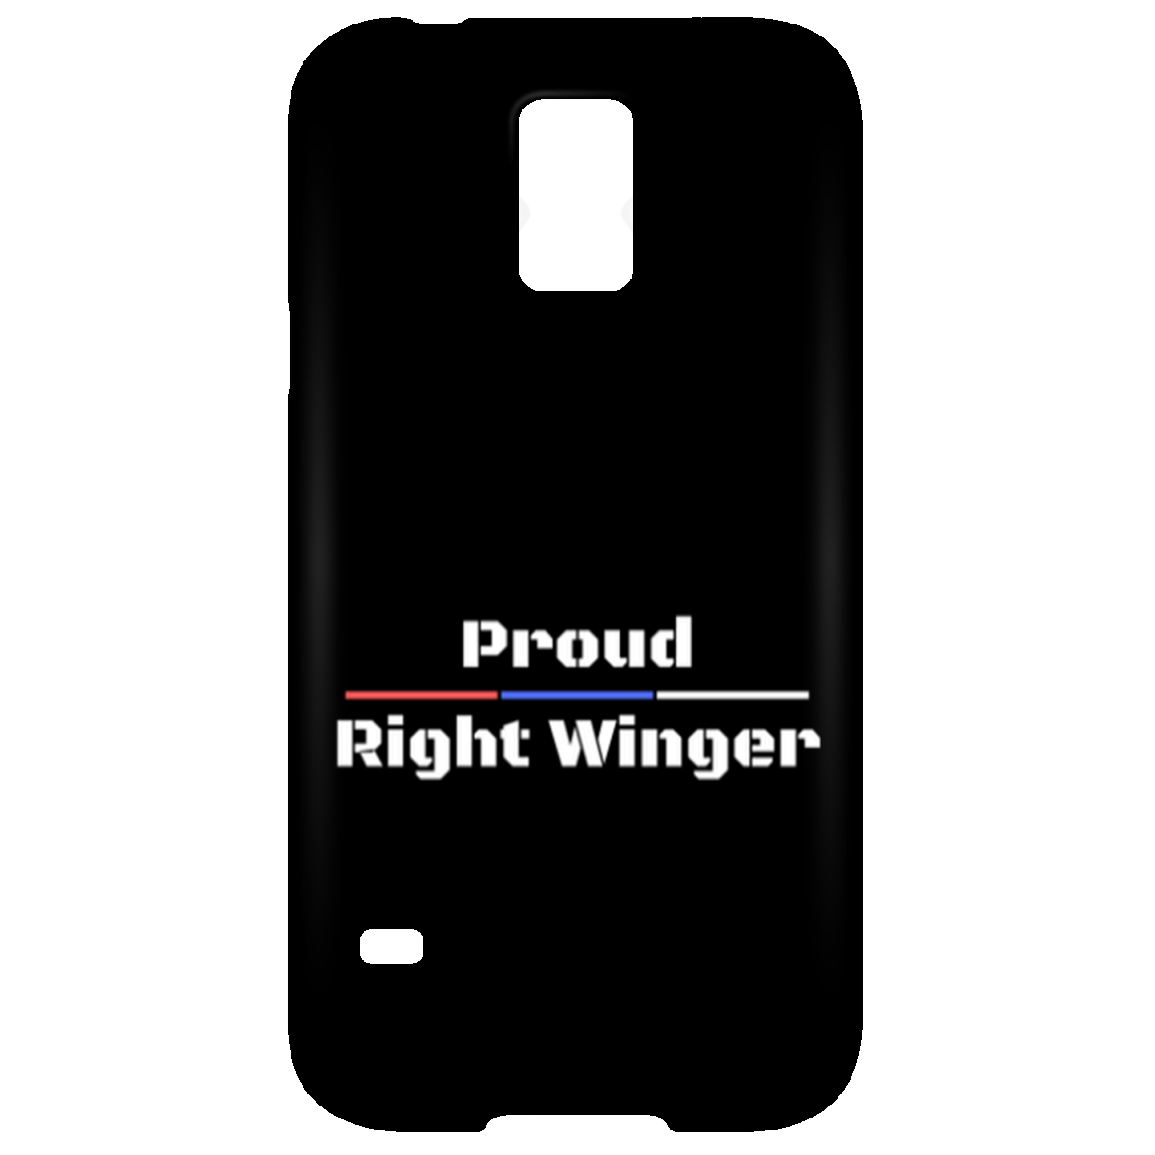 Proud Right Winger - Phone Cases